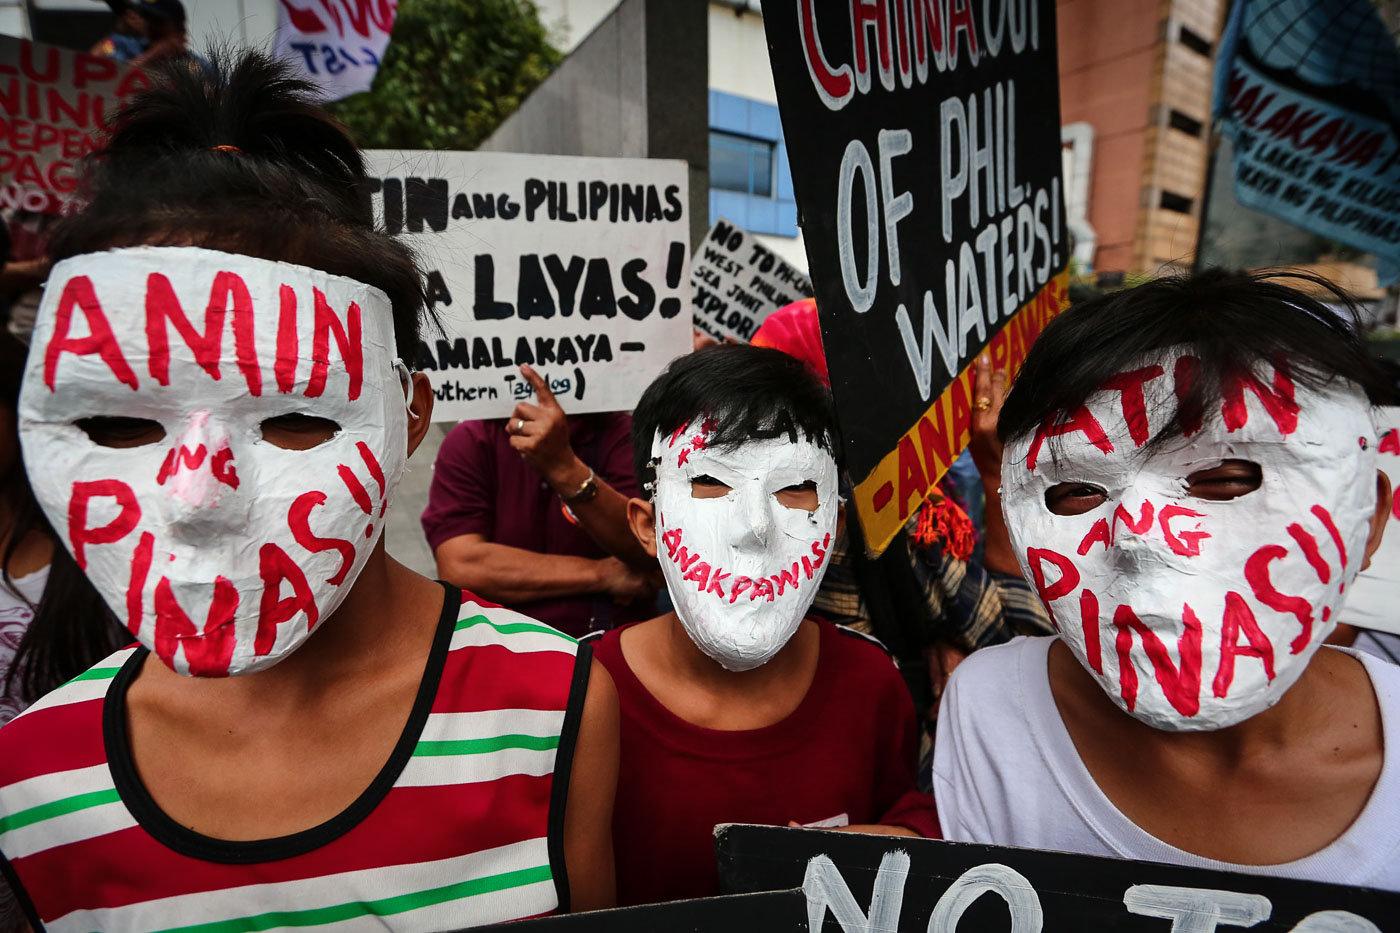 FOR THE PHILIPPINES. Men in masks make their own statement during a protest at the Chinese Consulate in light of Xi Jinping's PH state visit on November 20, 2018. Photo by Jire Carreon/Rappler